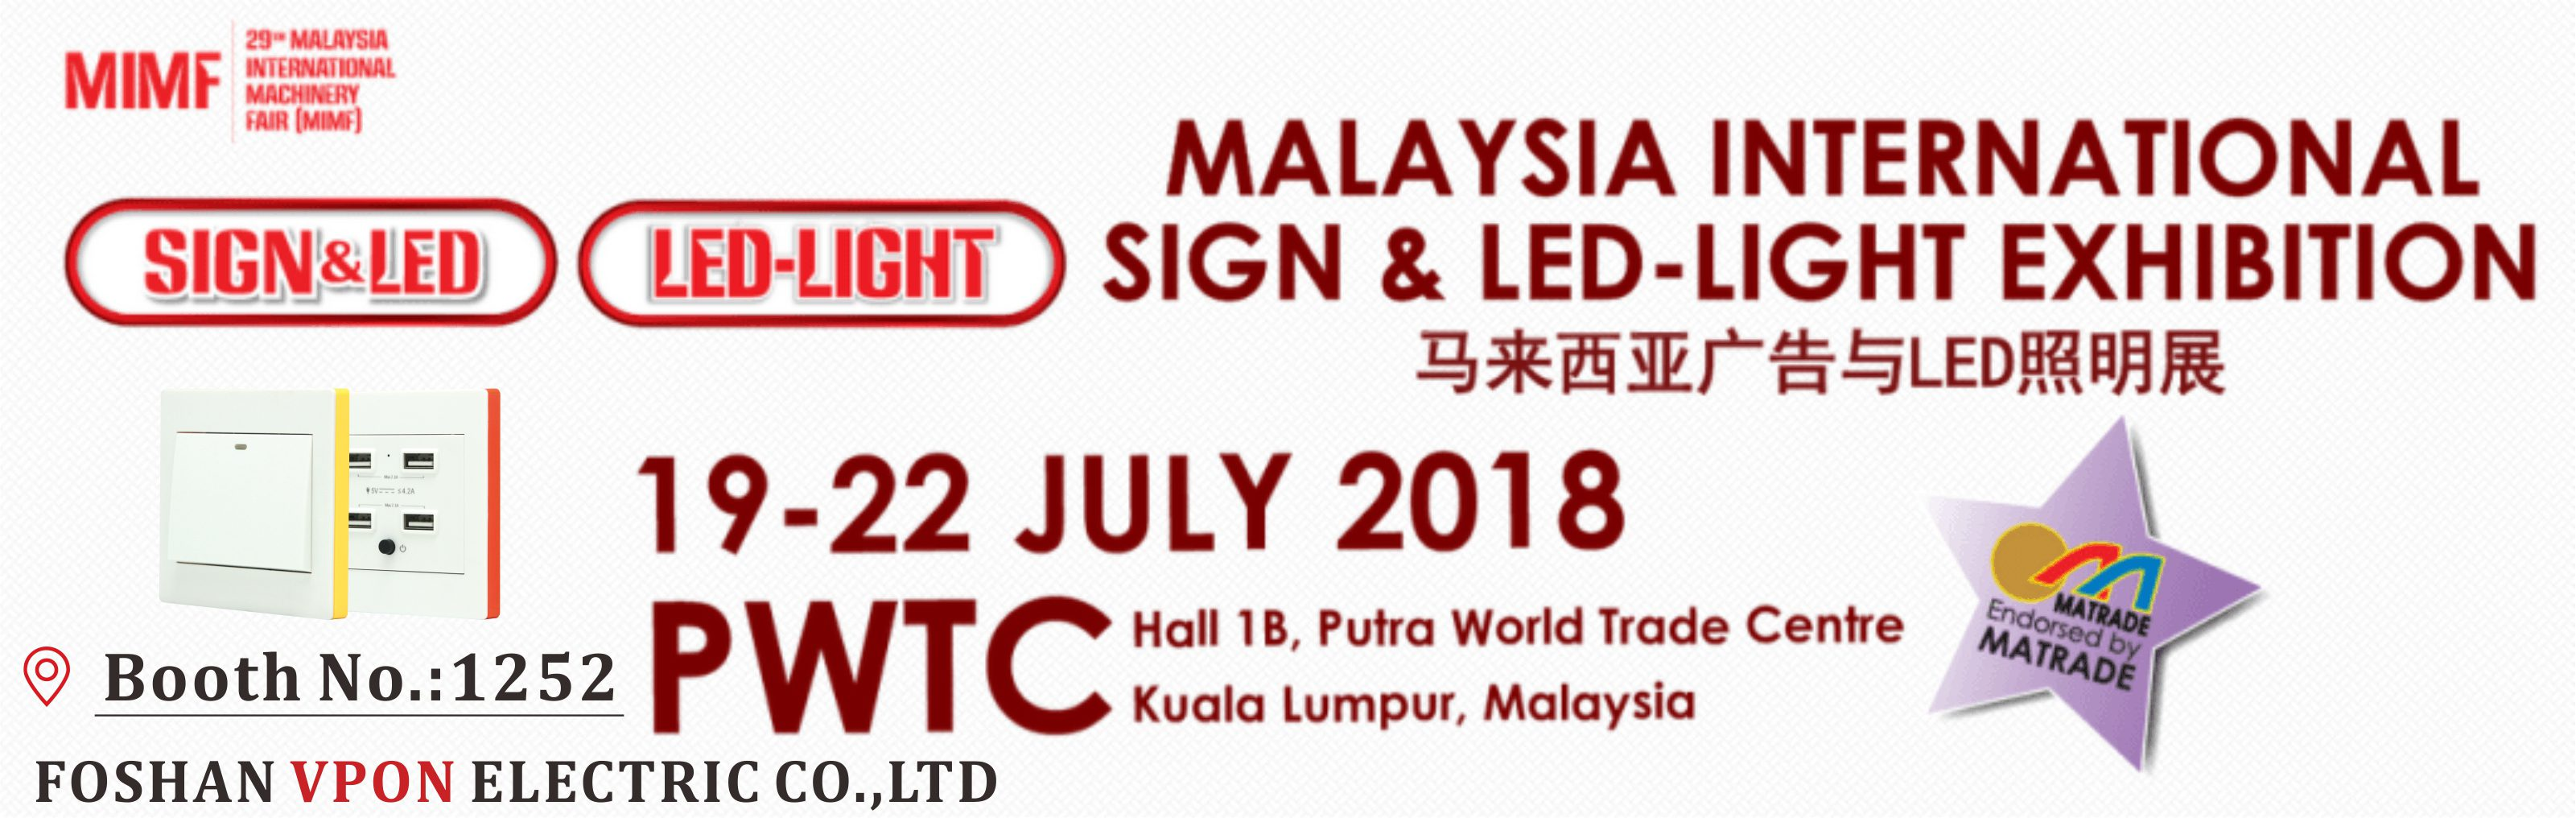 Malaysia International Sign & LED-Light Exhibition July 19-July 22